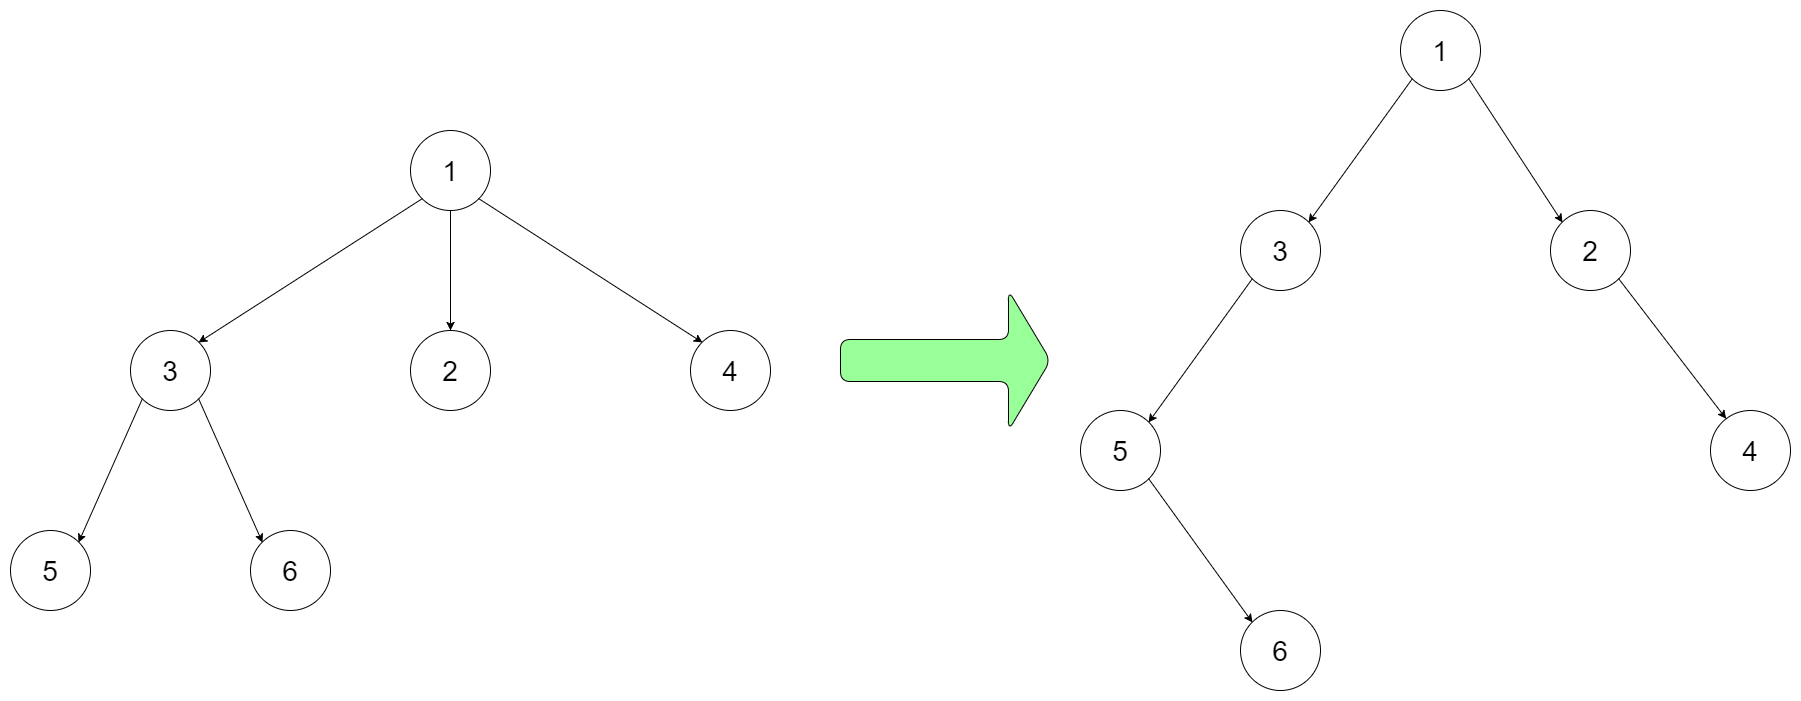 Serialize and Deserialize N-Ary to Binary Tree Input & Output